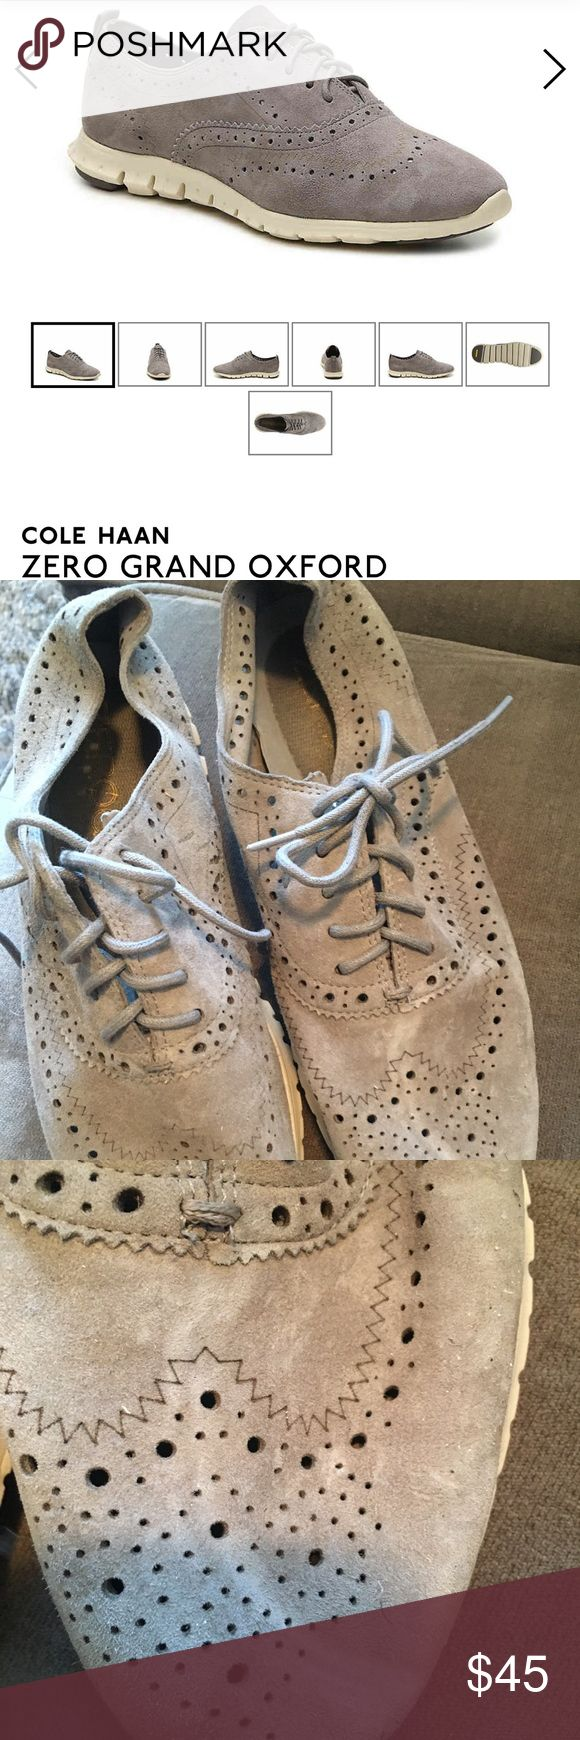 Cole Han Zero Grand Grey Suede Sneakers Sz 7.5 Ridiculously comfy yet professional, worn less than 10 times, no scuffs or marks on the suede. Beautiful Grey Cole Haan Shoes Sneakers